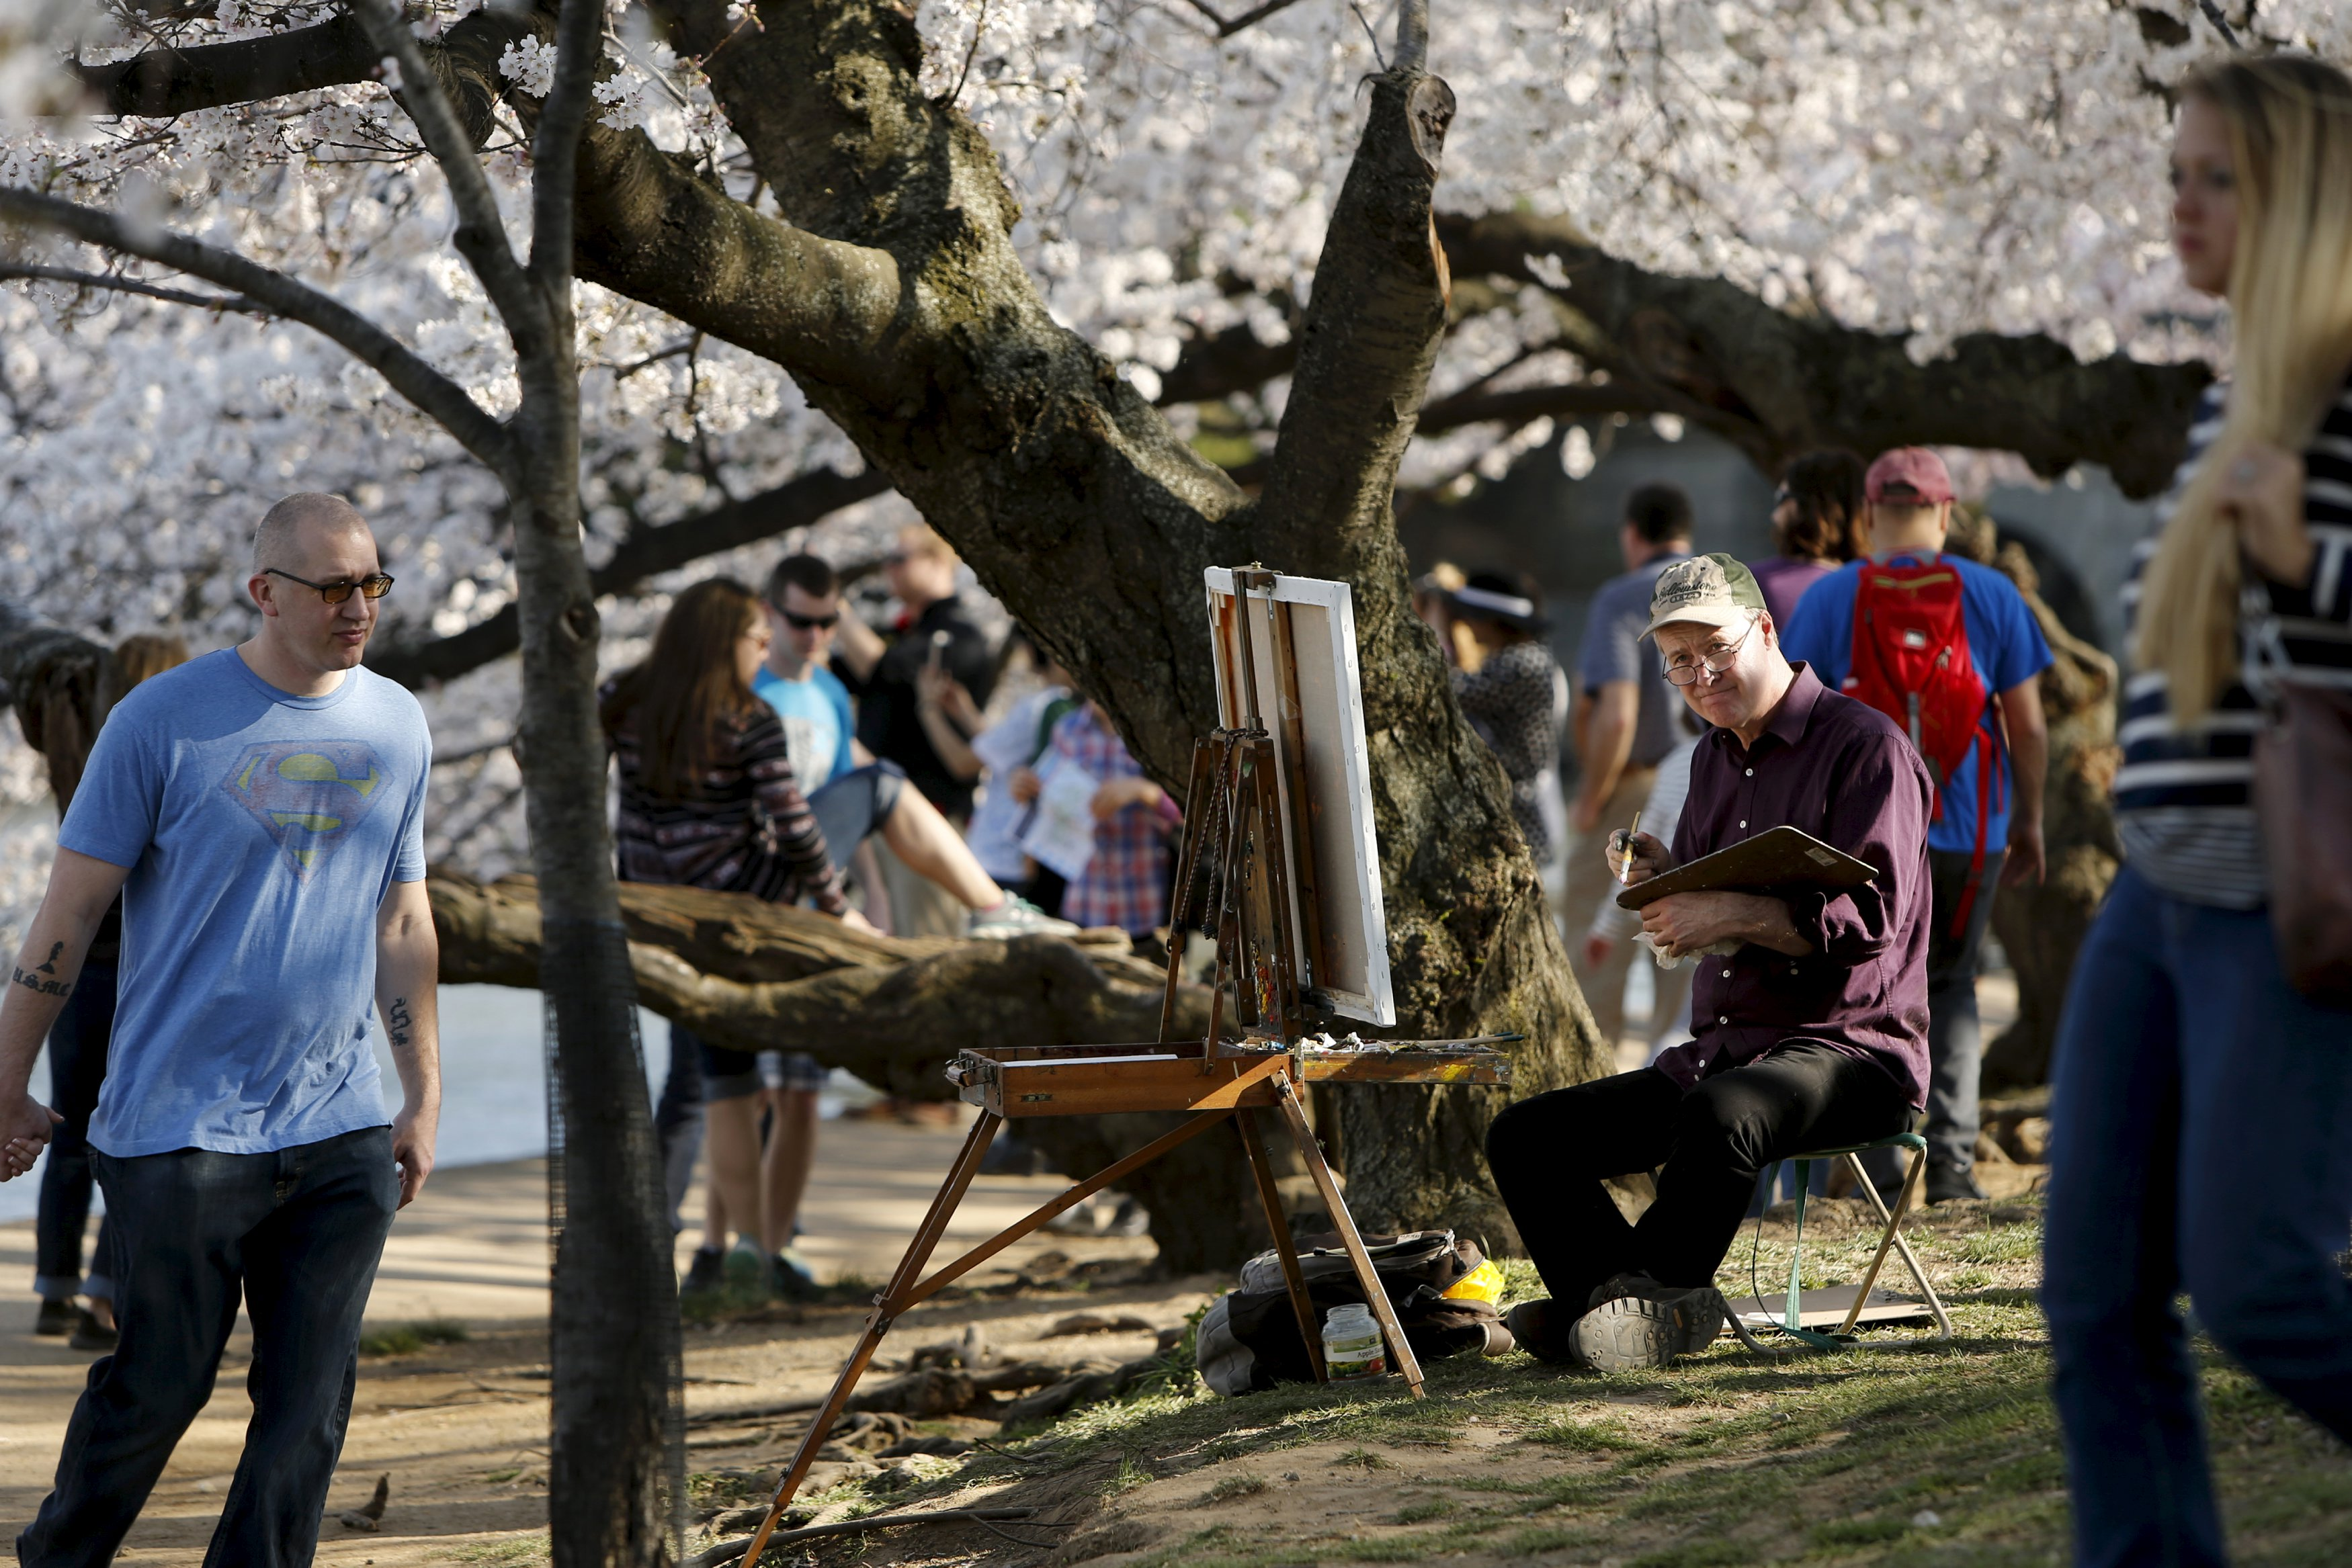 Cherry Blossoms: A Good Option for Picking Up Filipino Girls